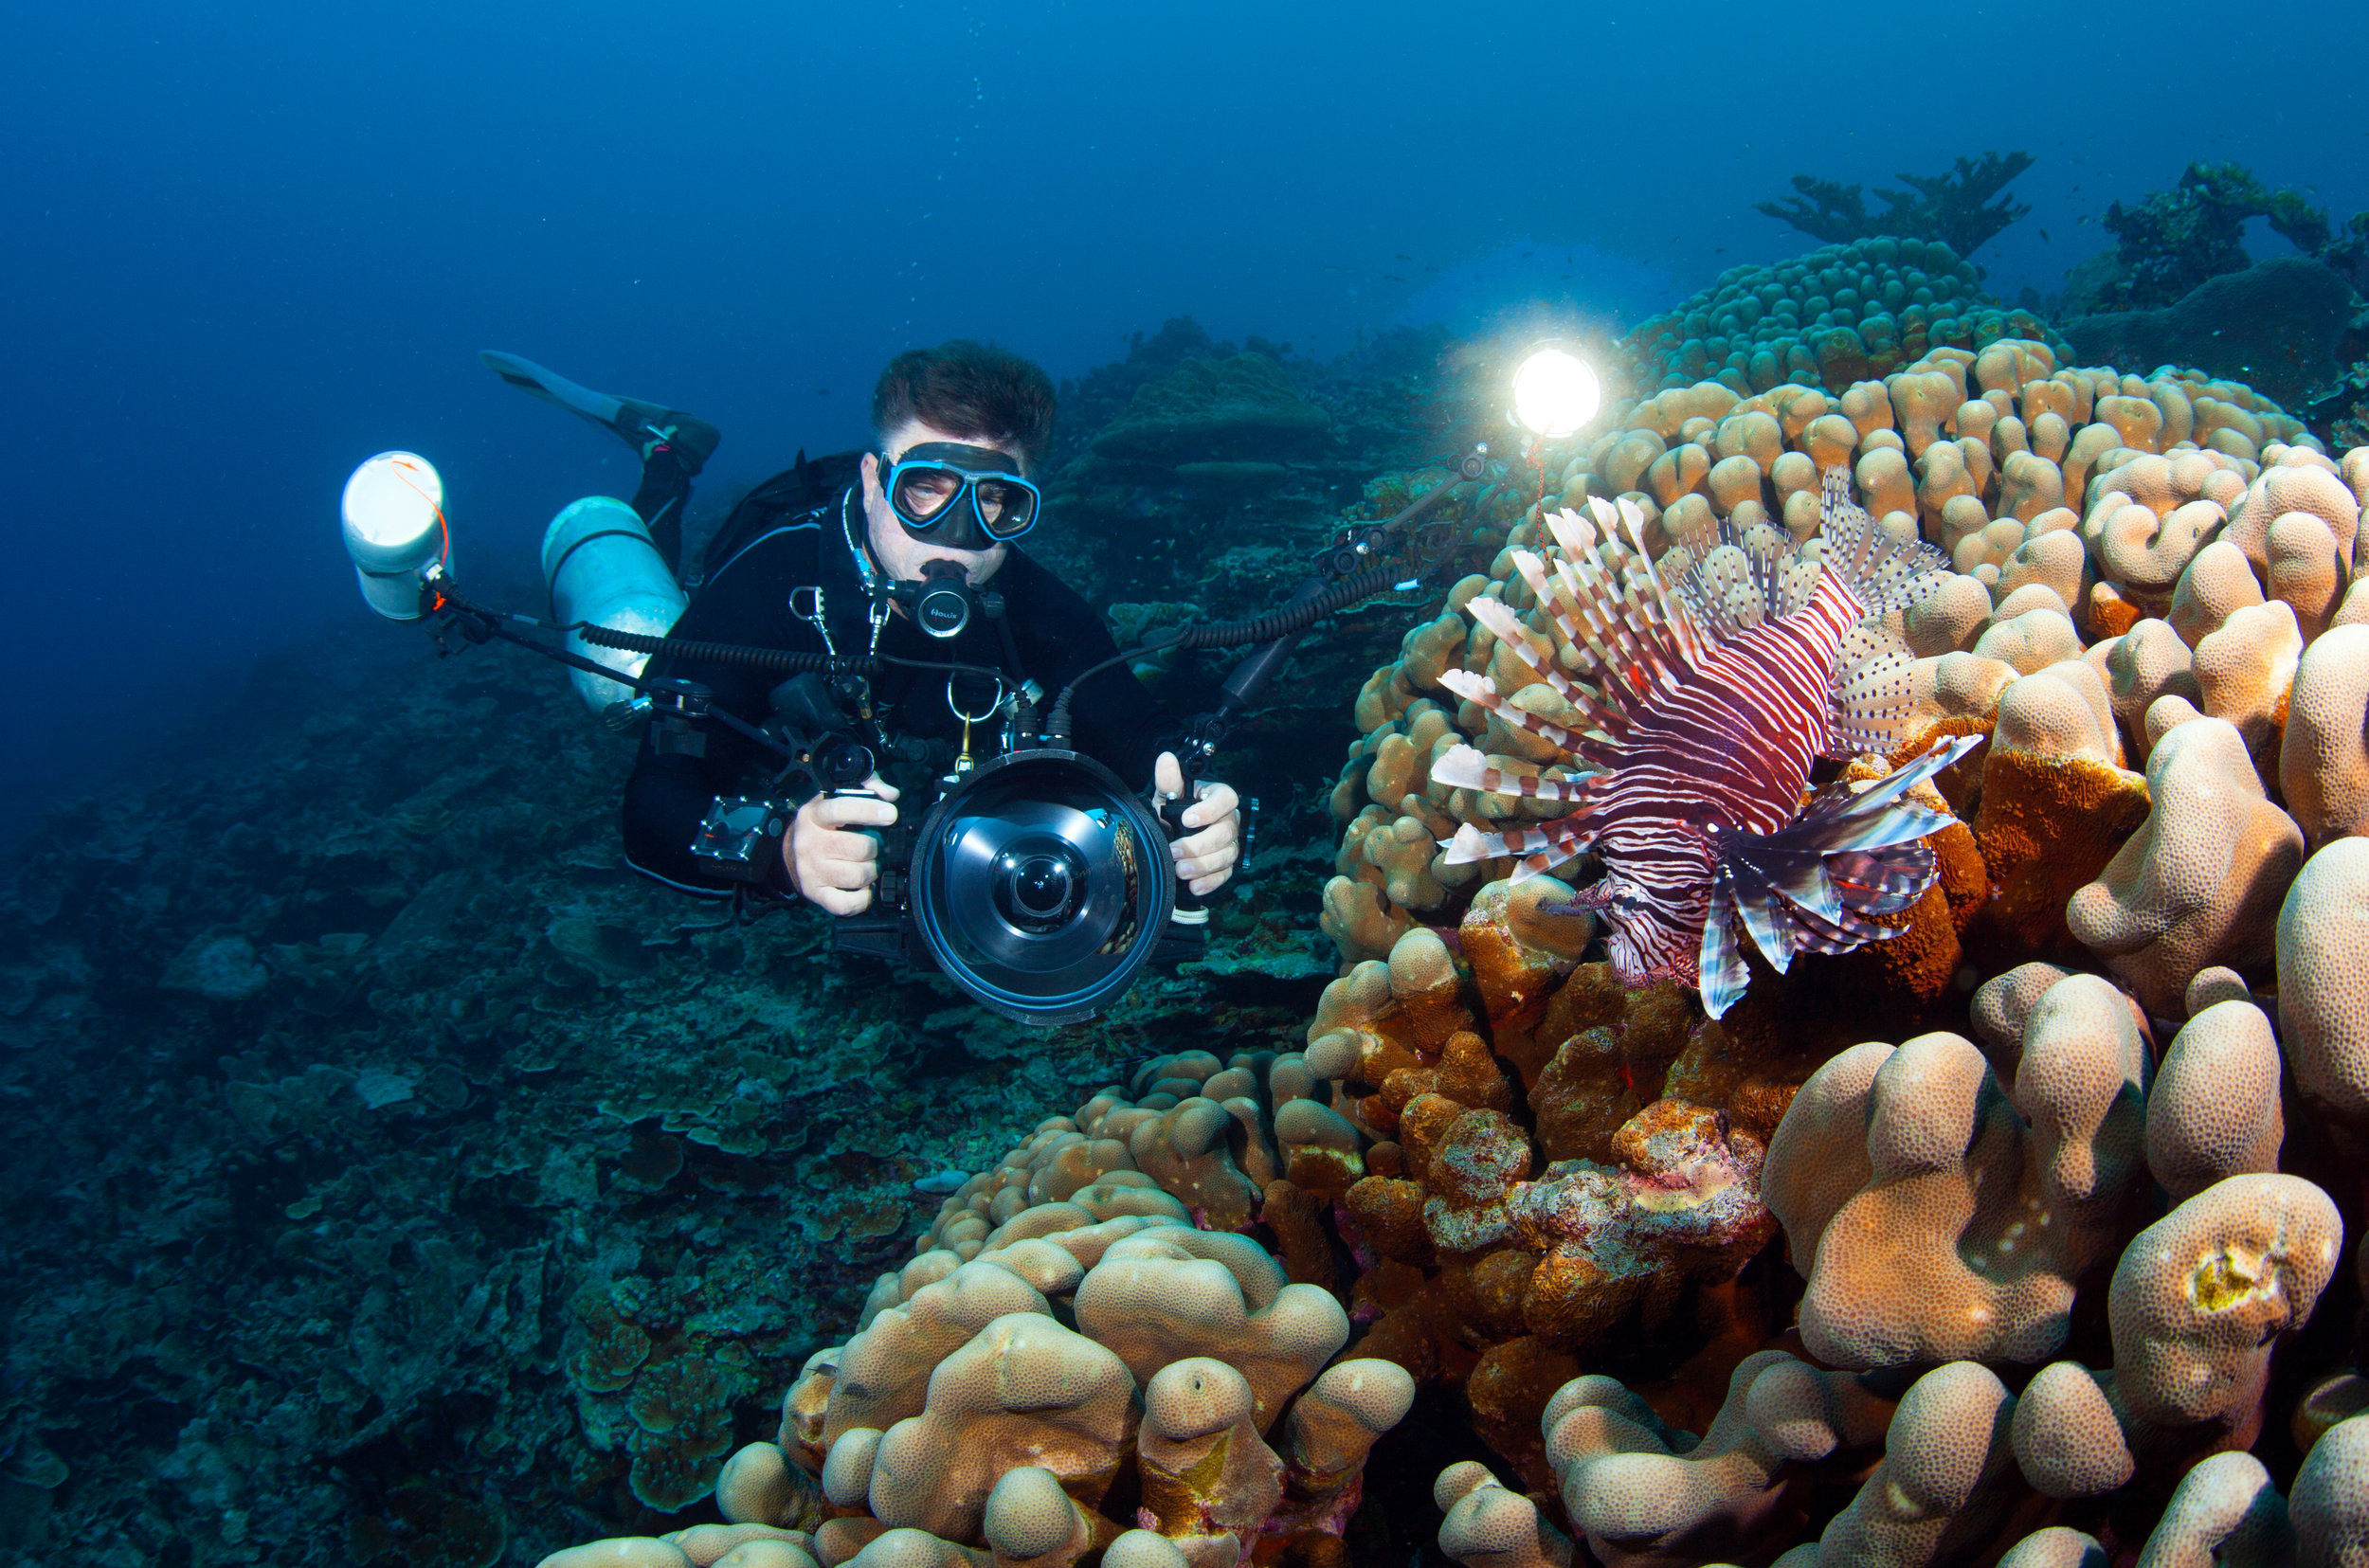 photographing a lionfish on Christmas Island CRedit: Jill heinerth / coral reef image bank